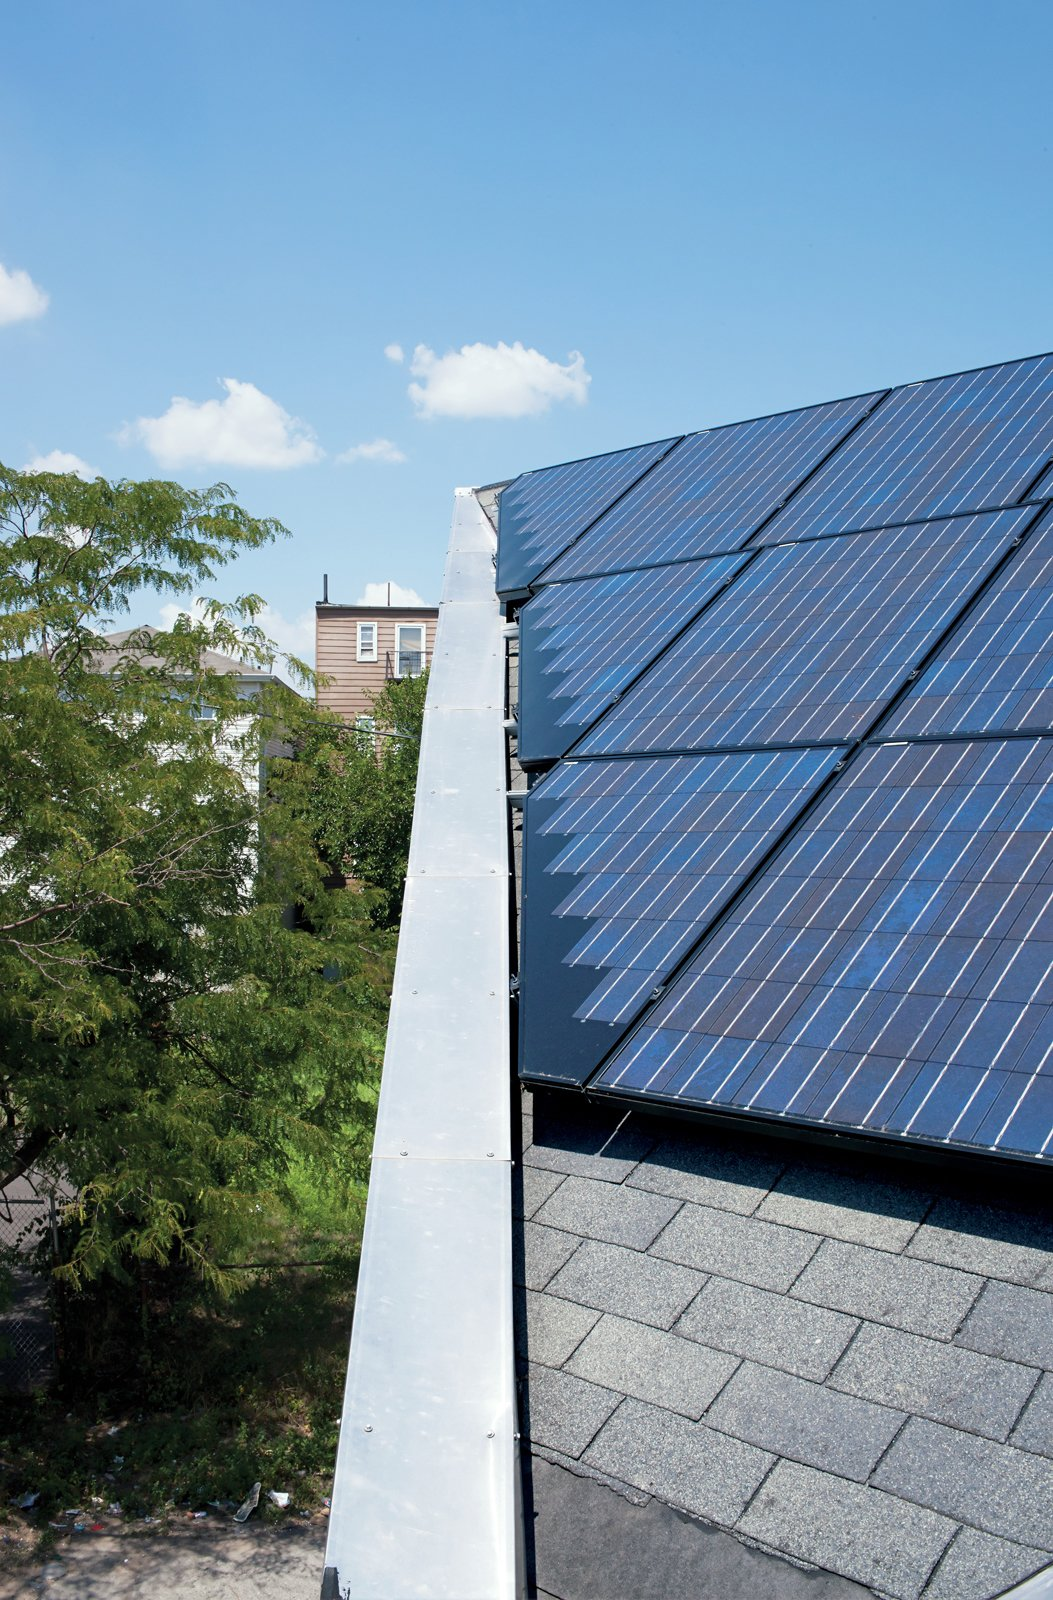 A 260-square-foot solar array was installed atop a triangular section of the roof, which faces due south and is angled at 30 degrees for optimal solar collection.